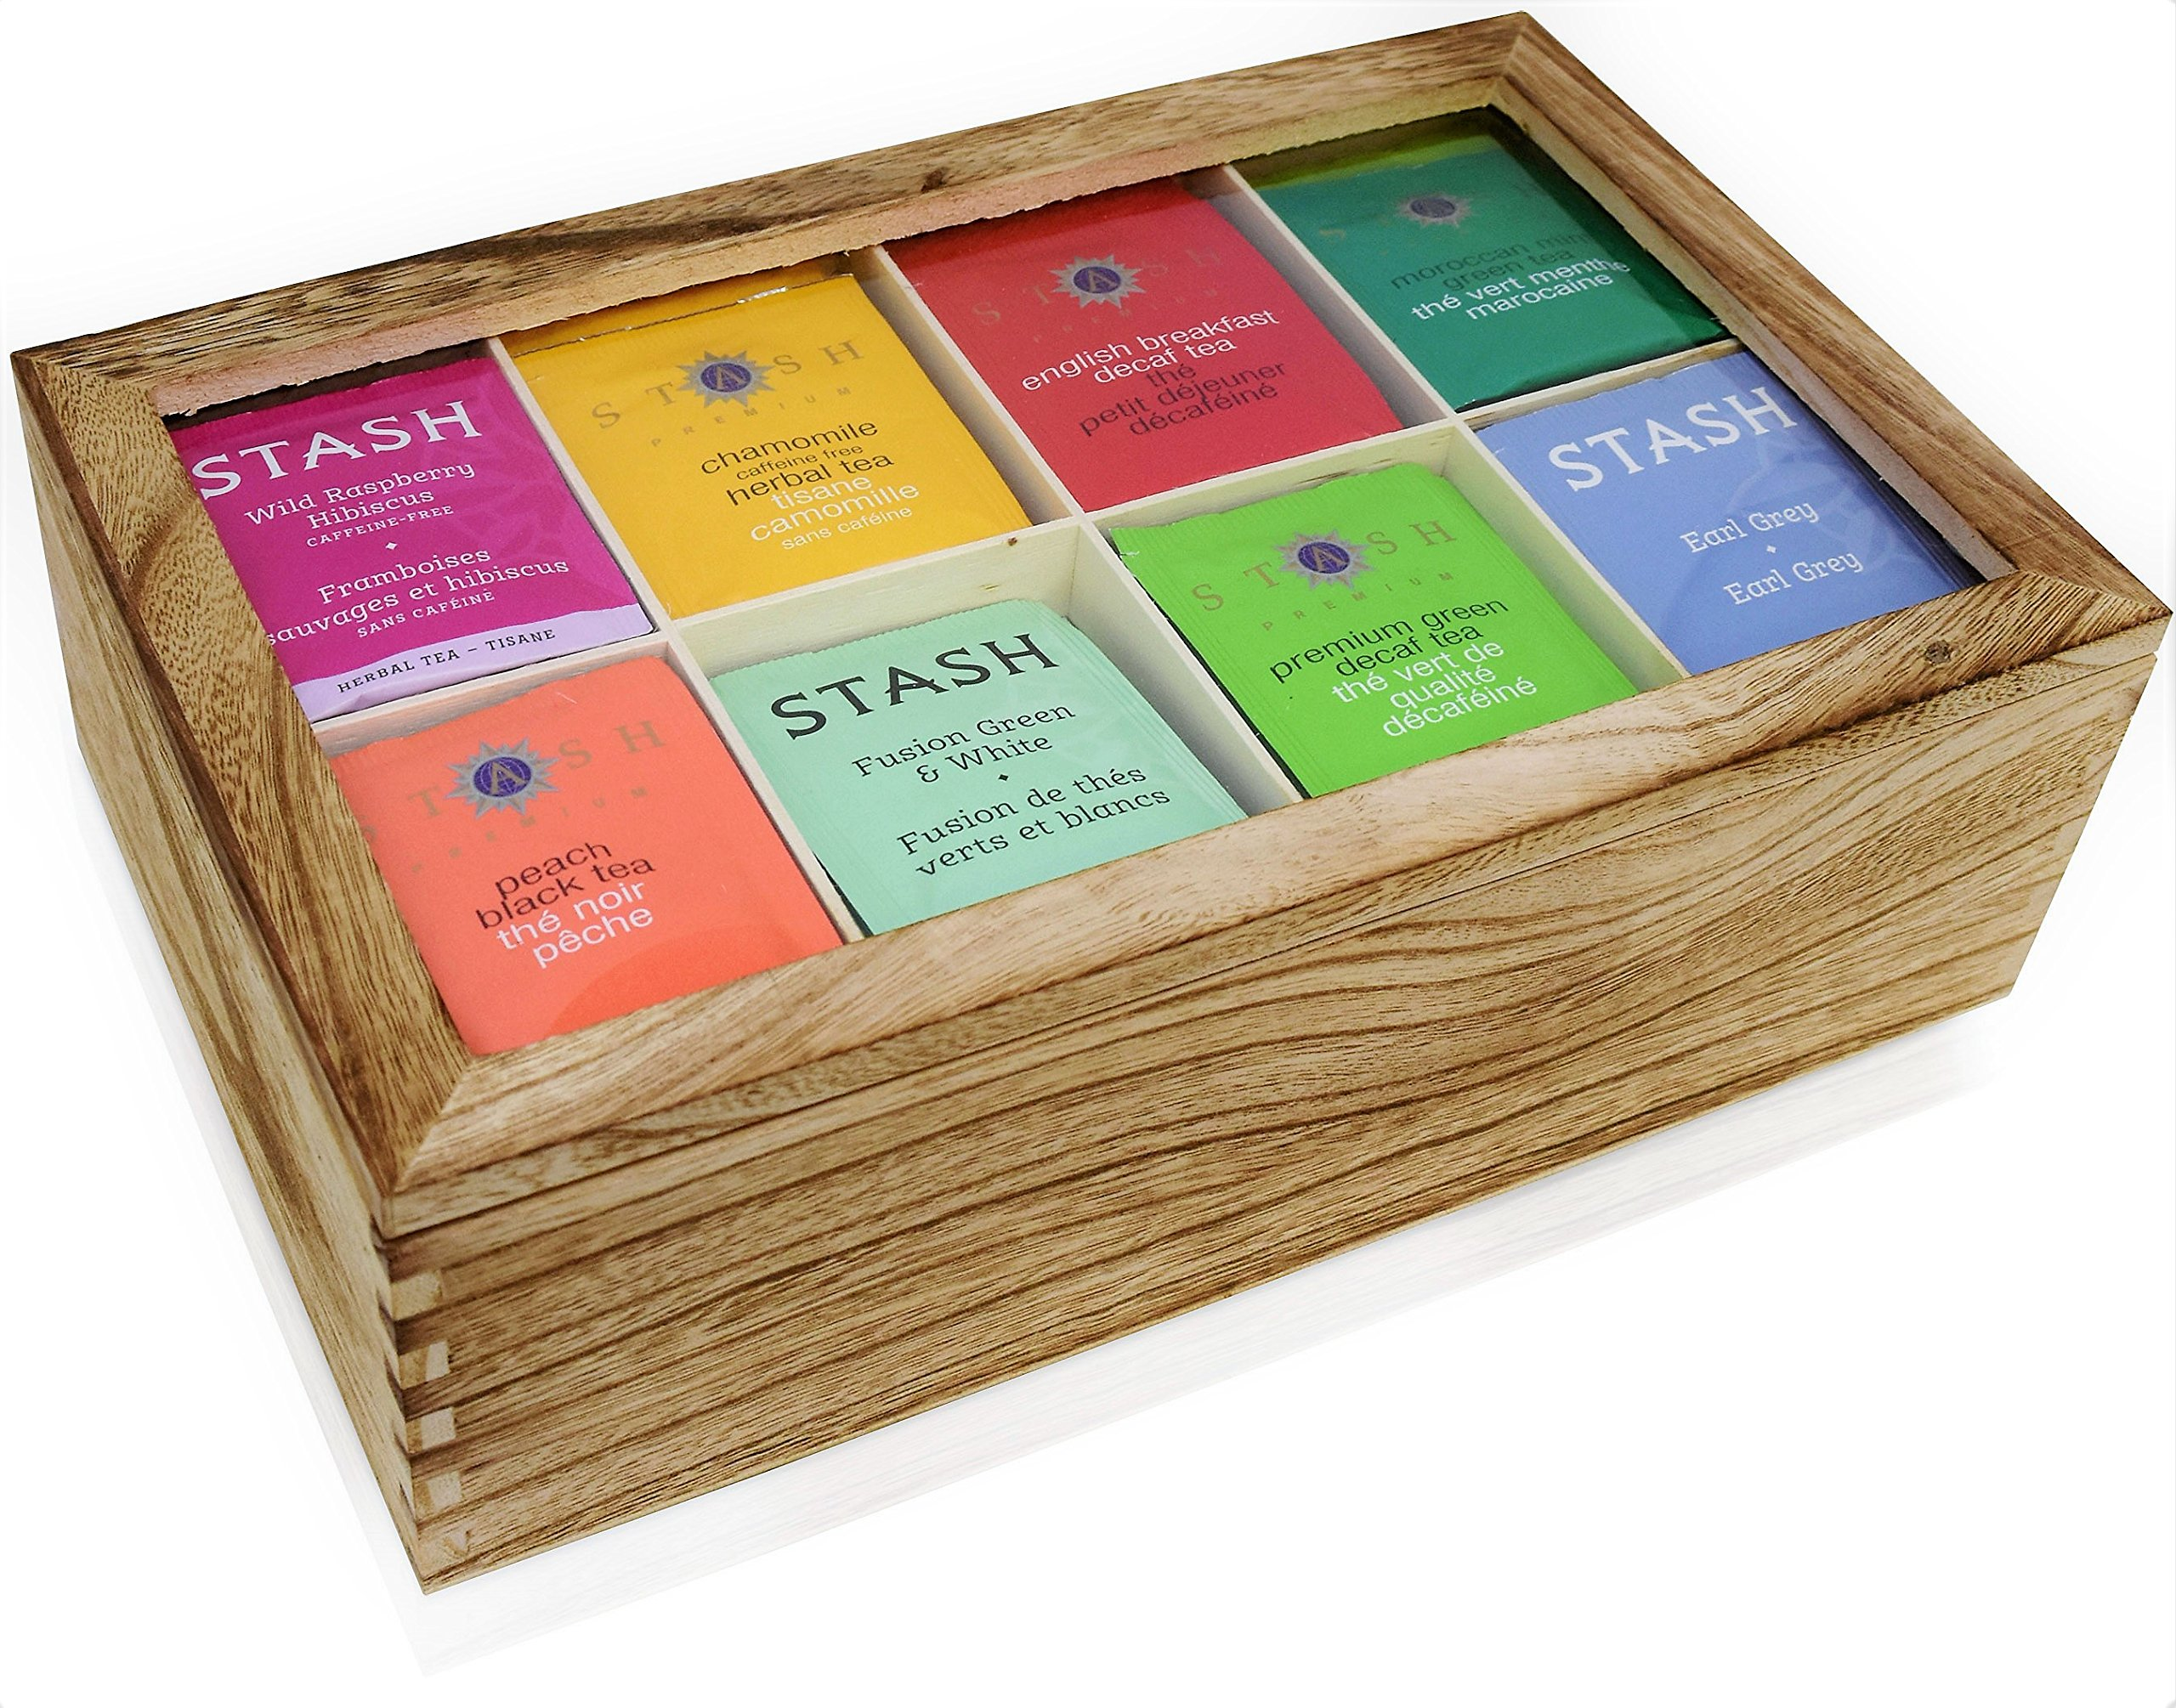 Stash Tea Bags Sampler Assortment Box - 120 COUNT - Perfect Variety Pack in Wooden Gift Box - Gift for Family, Friends, Coworkers - English Breakfast, Green, Moroccan Mint, Peach, Chamomile and more by Blue Ribbon